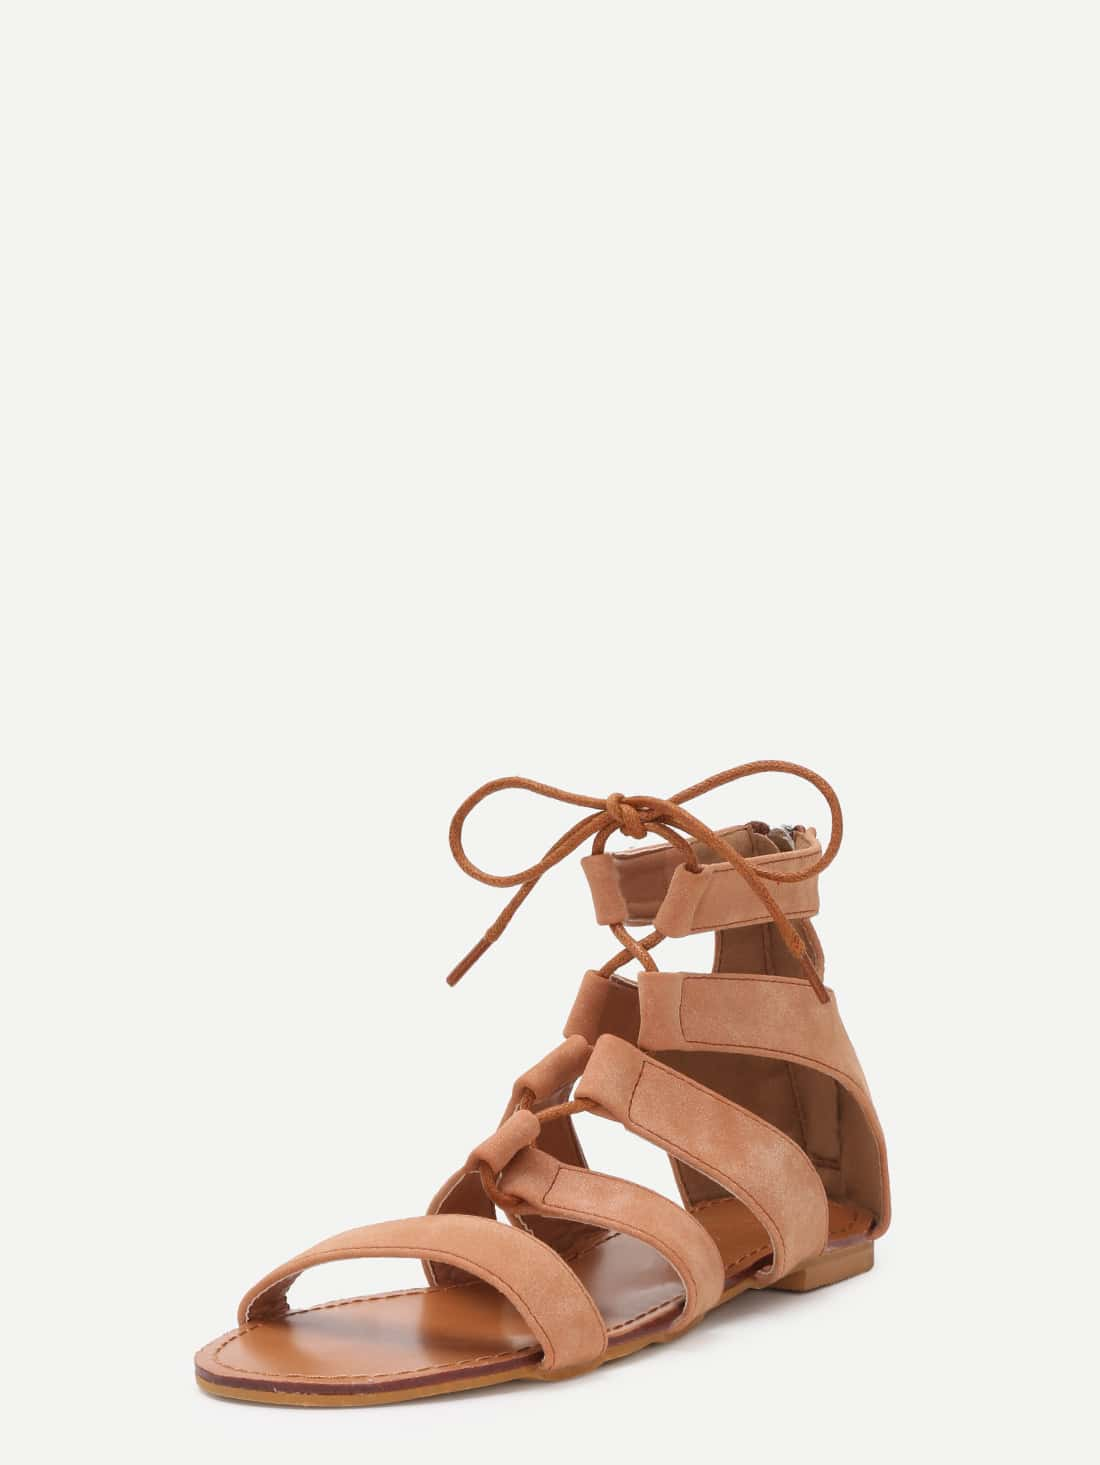 8c975538dc3 Brown Peep Toe Caged Cut Out Gladiator SandalsFor Women-romwe